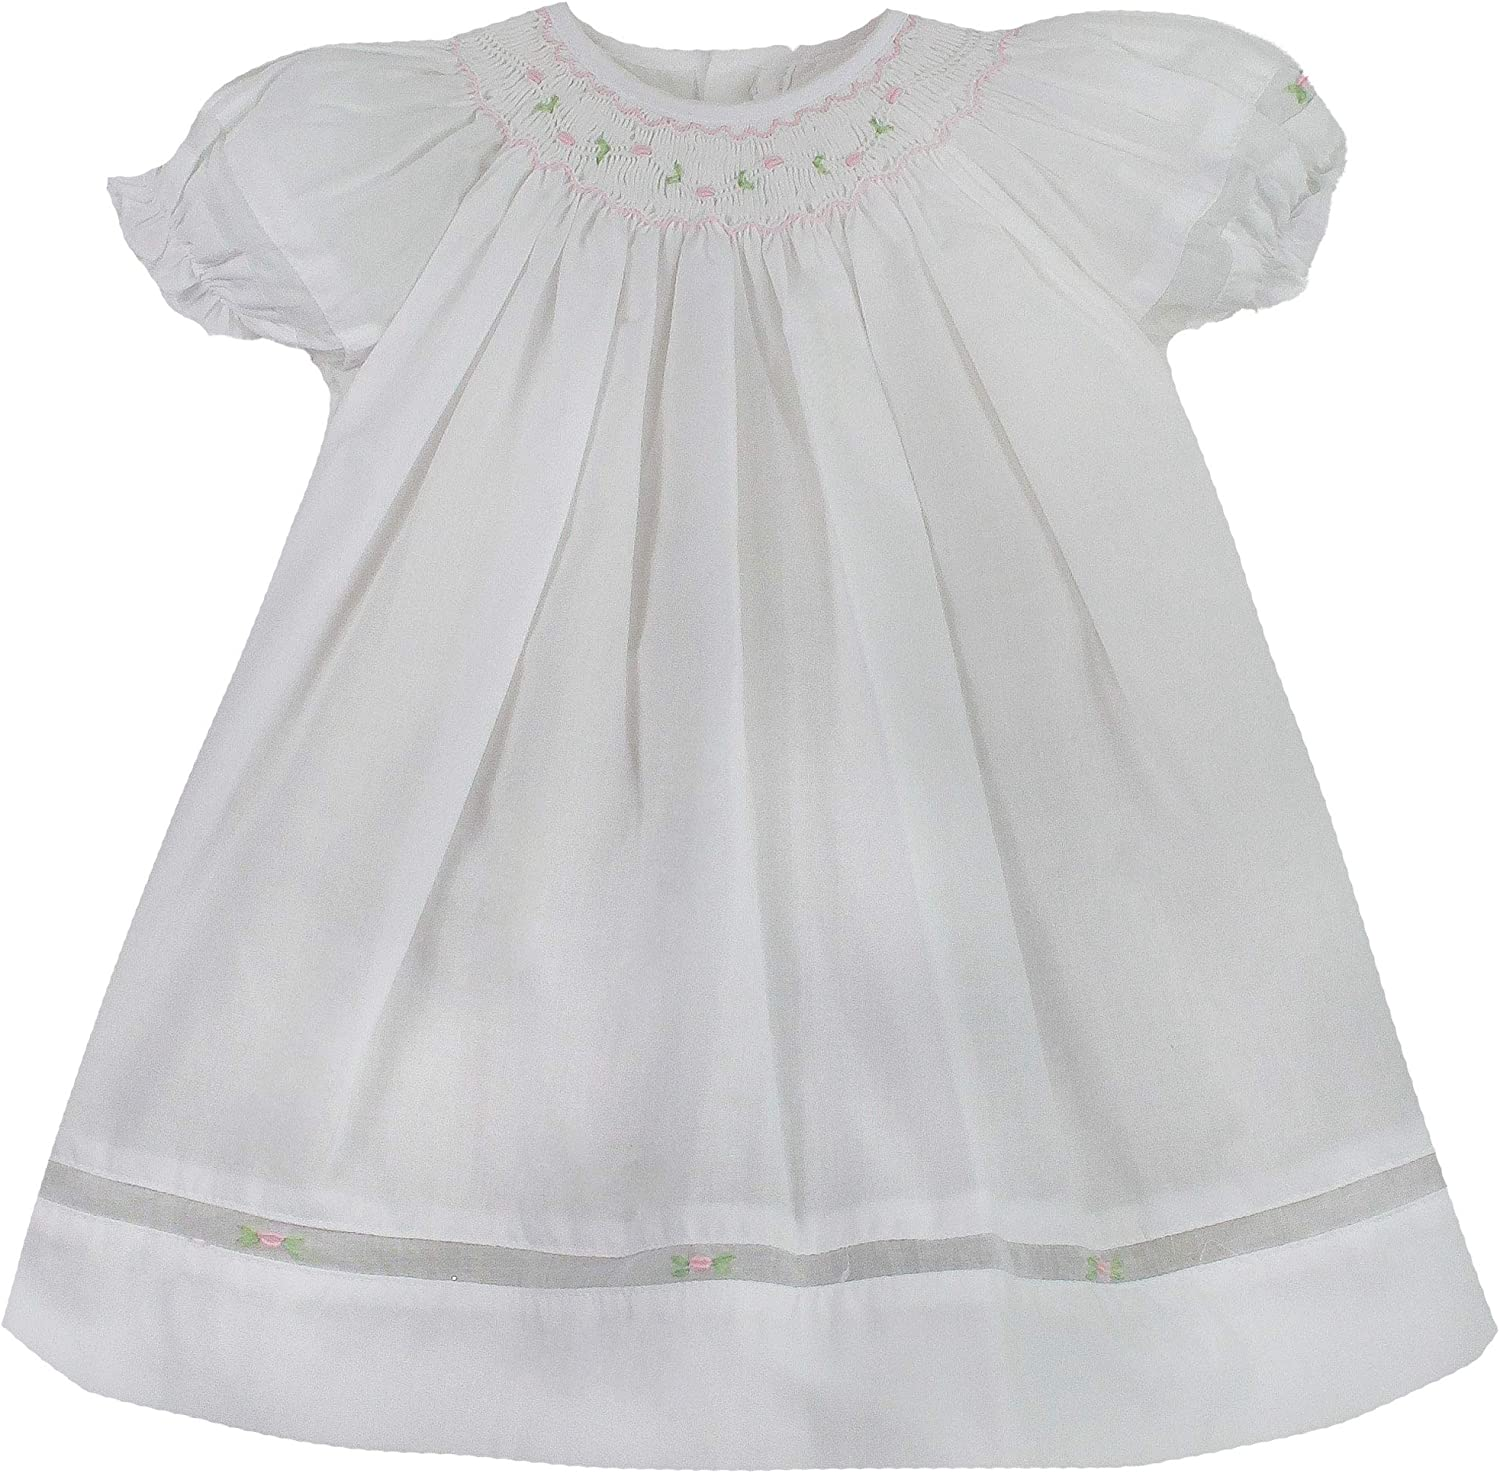 Petit Ami Washington Mall Baby Girls' Smocked Daygown Popular products Voile Insert with